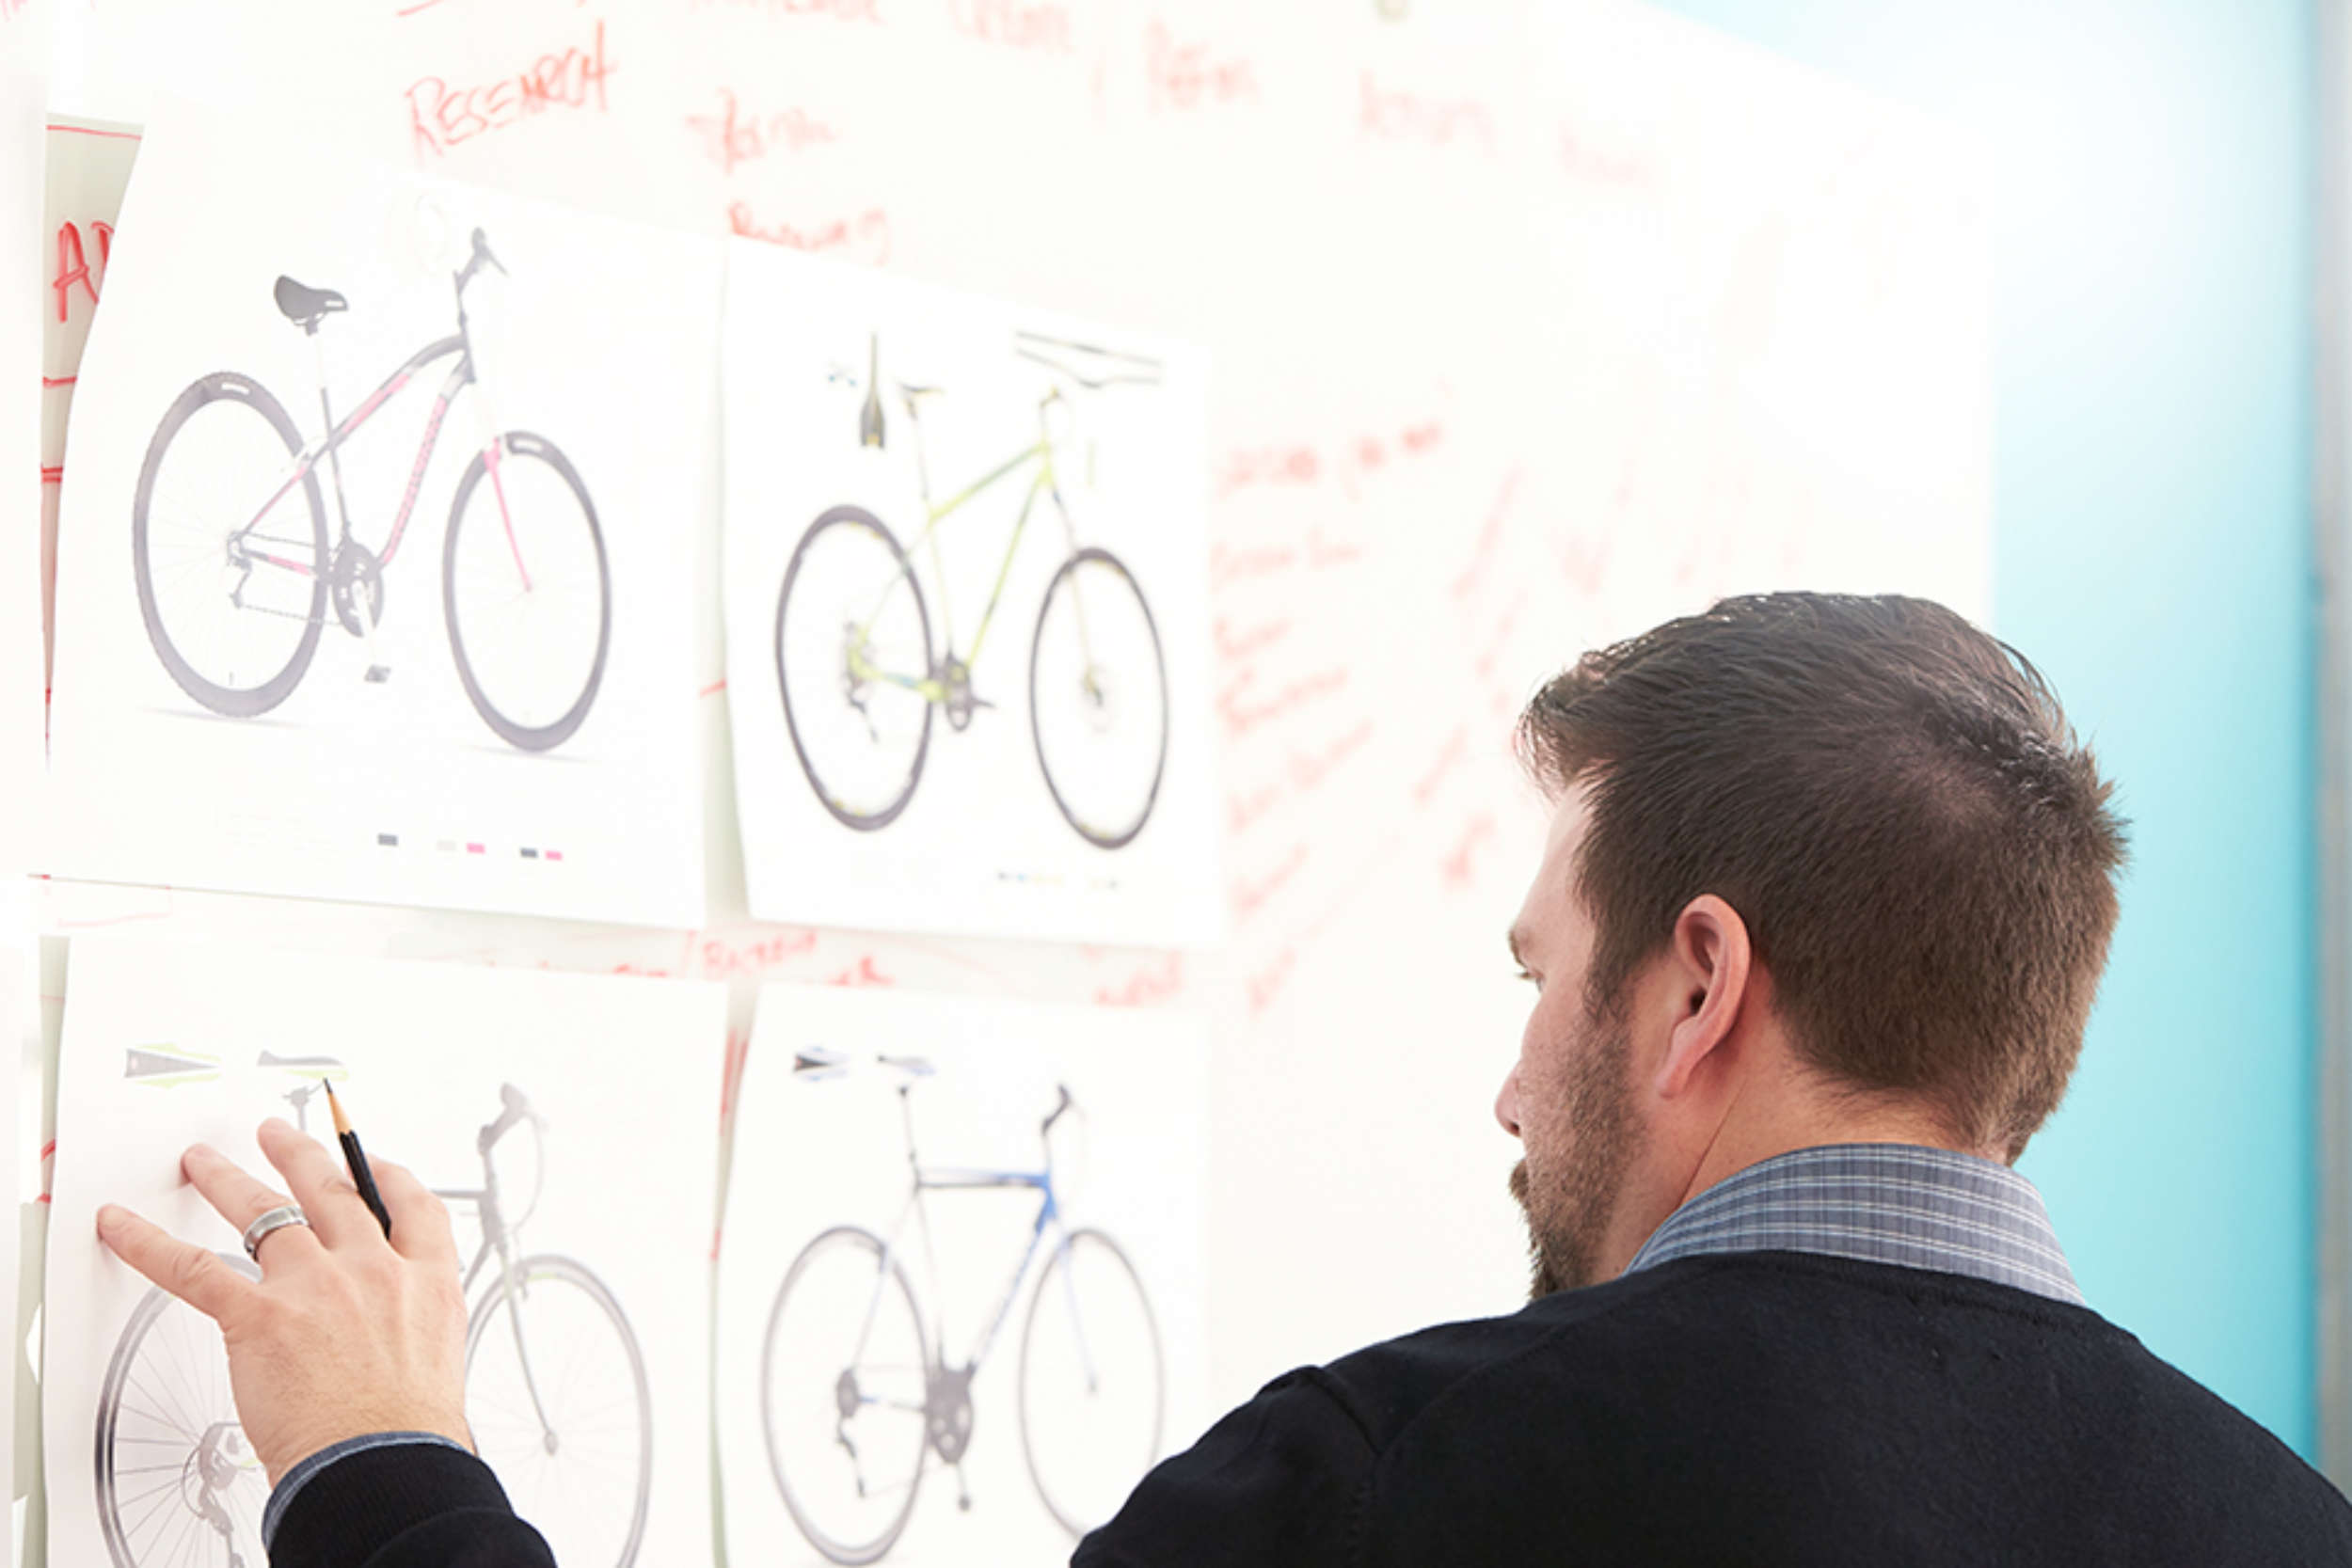 graphic design critique of bike designs